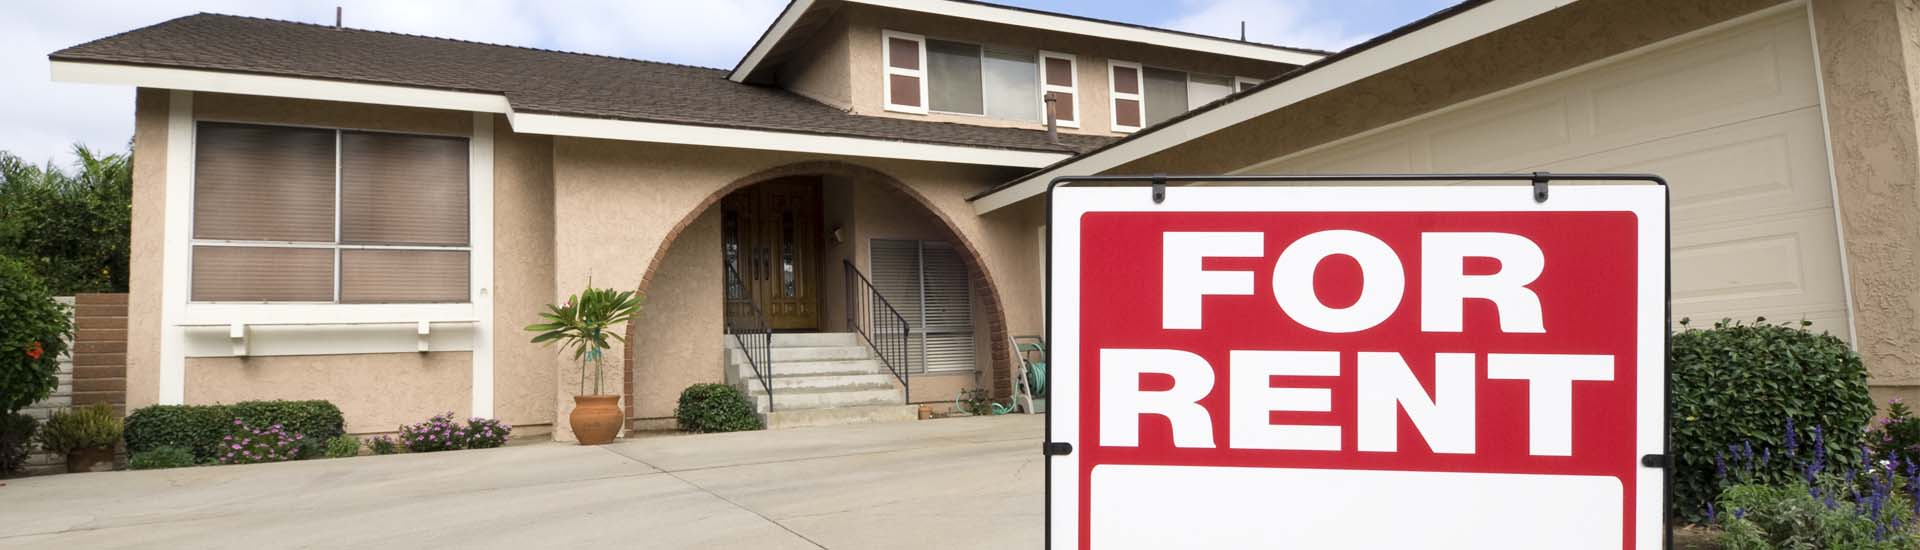 Rent Back Agreements - Home Buyers in Boise